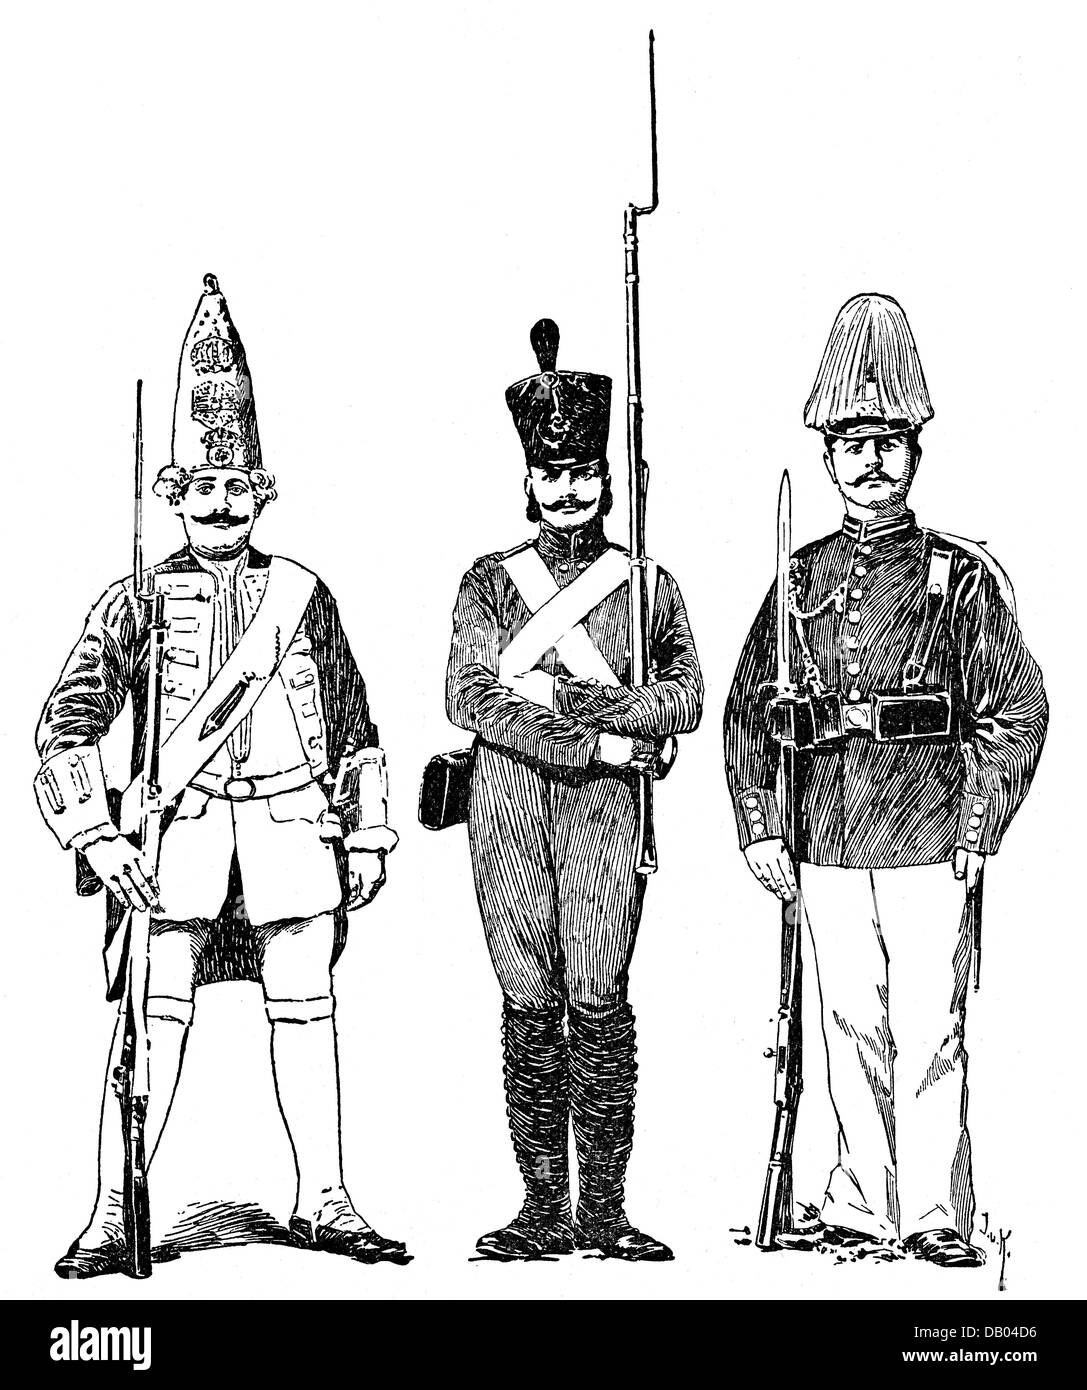 military, uniforms, Germany, Mecklenburg, uniforms of the company Leibgarde zu Fuss, later 2nd Battalion, Grand - Stock Image